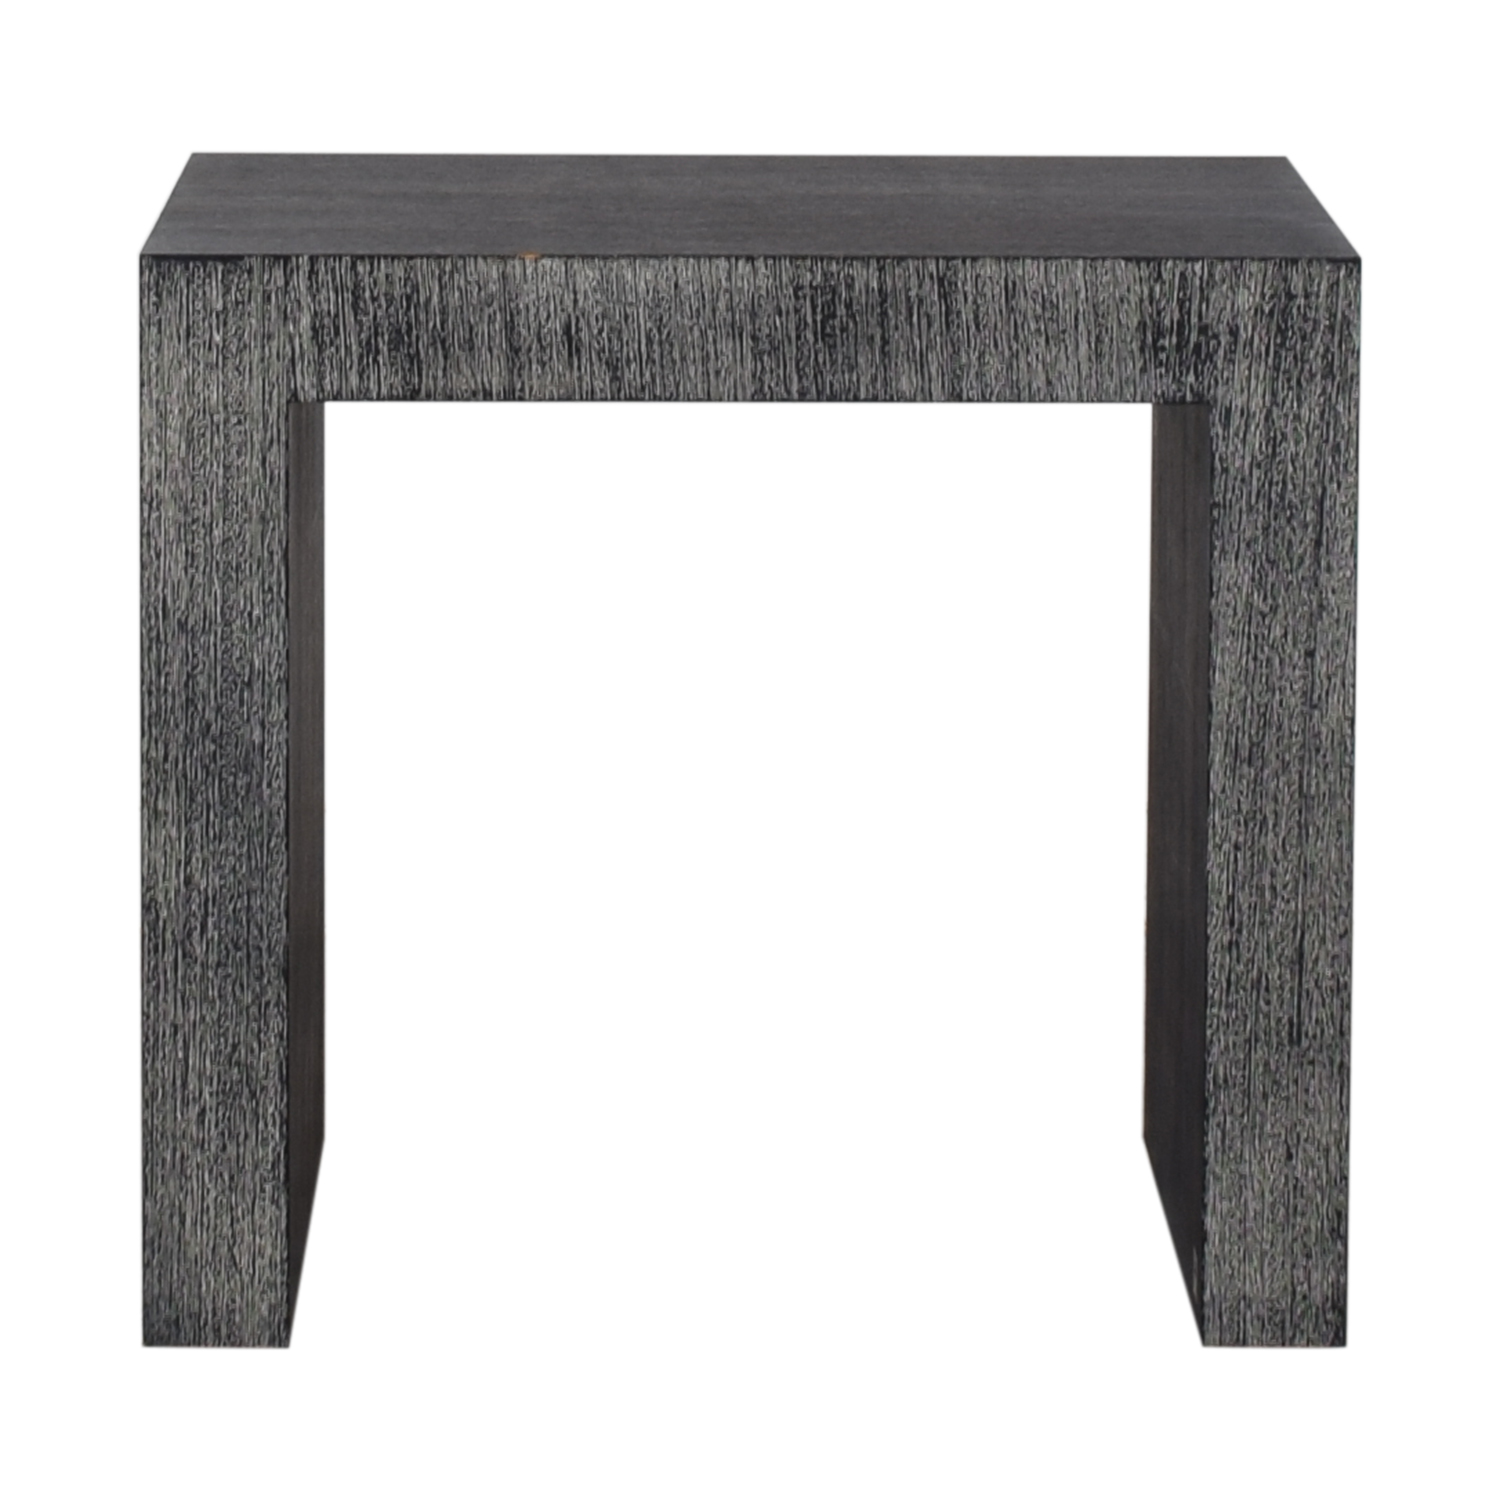 Armani Casa Armani Casa Pari Side Table discount